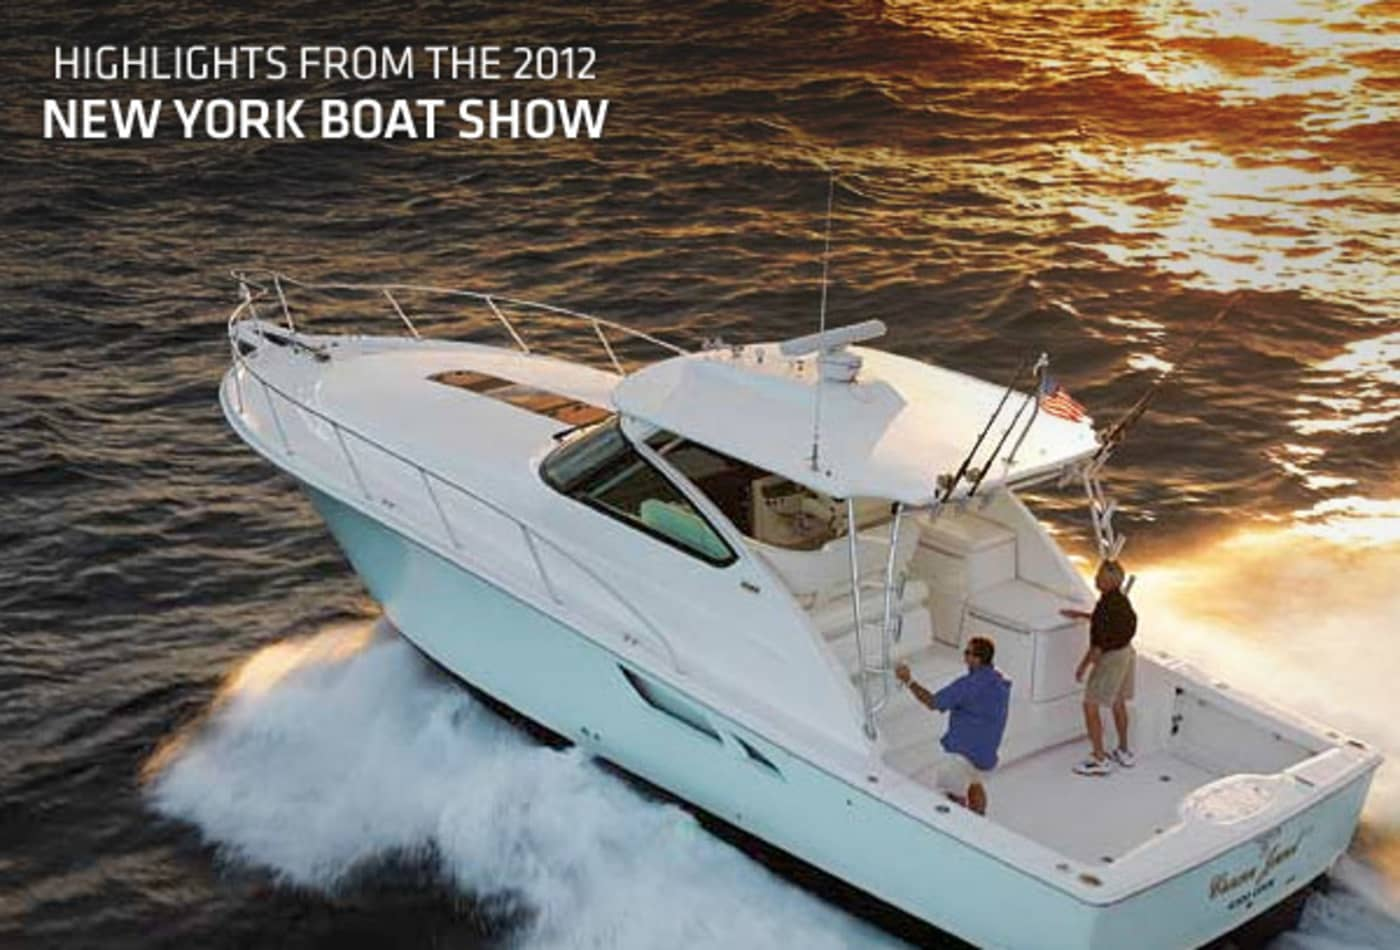 Scenes-from-2012-boat-show-cover2.jpg